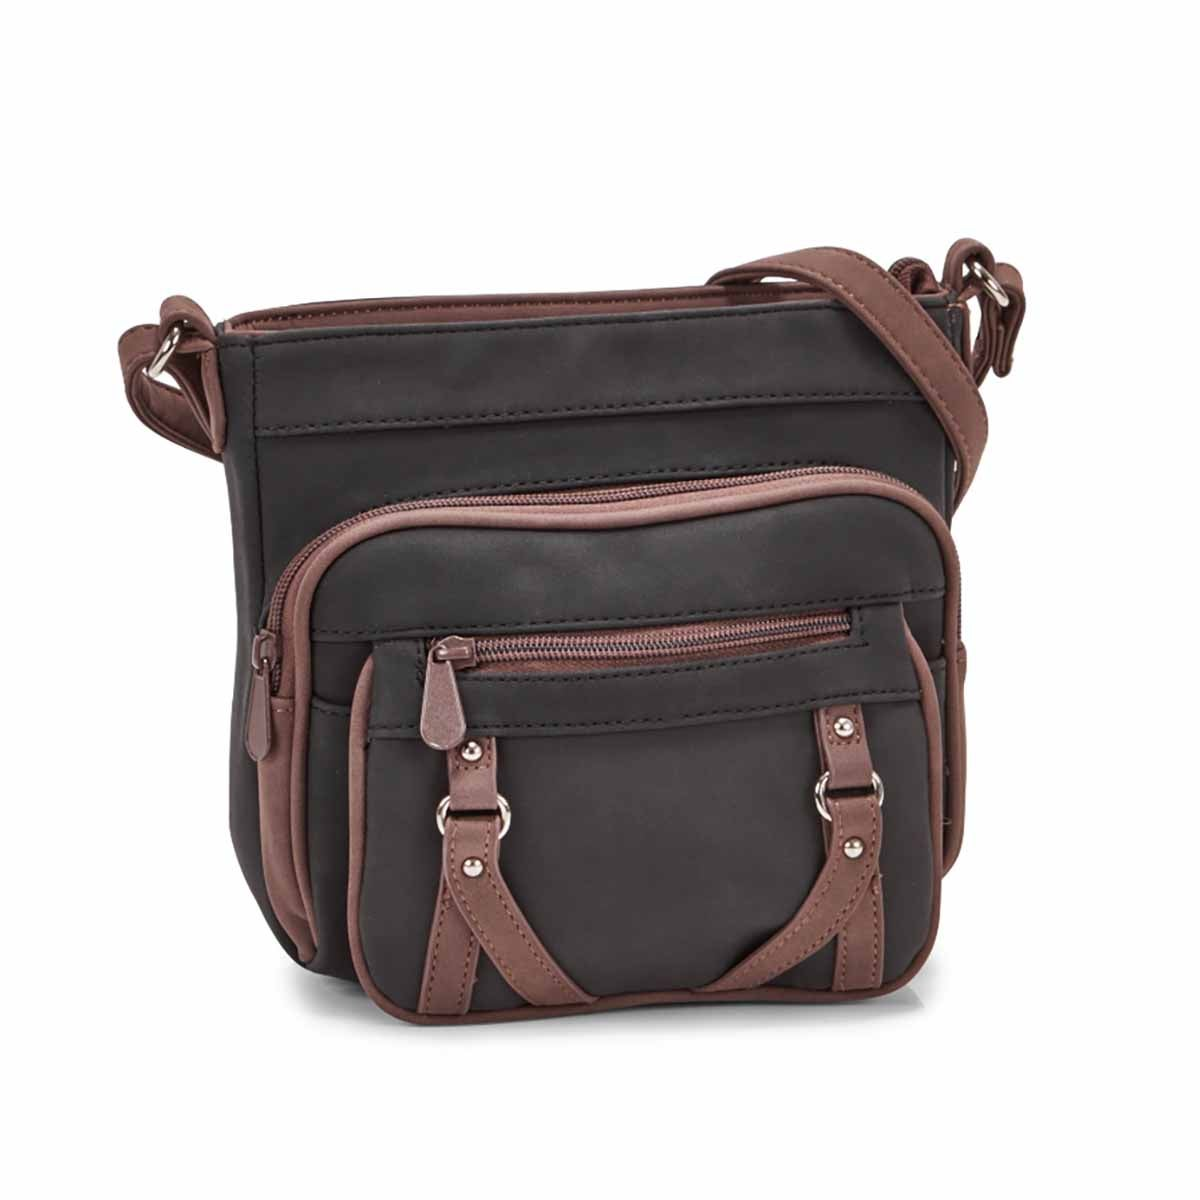 Women's PRIME MINI black/coffee cross body bag